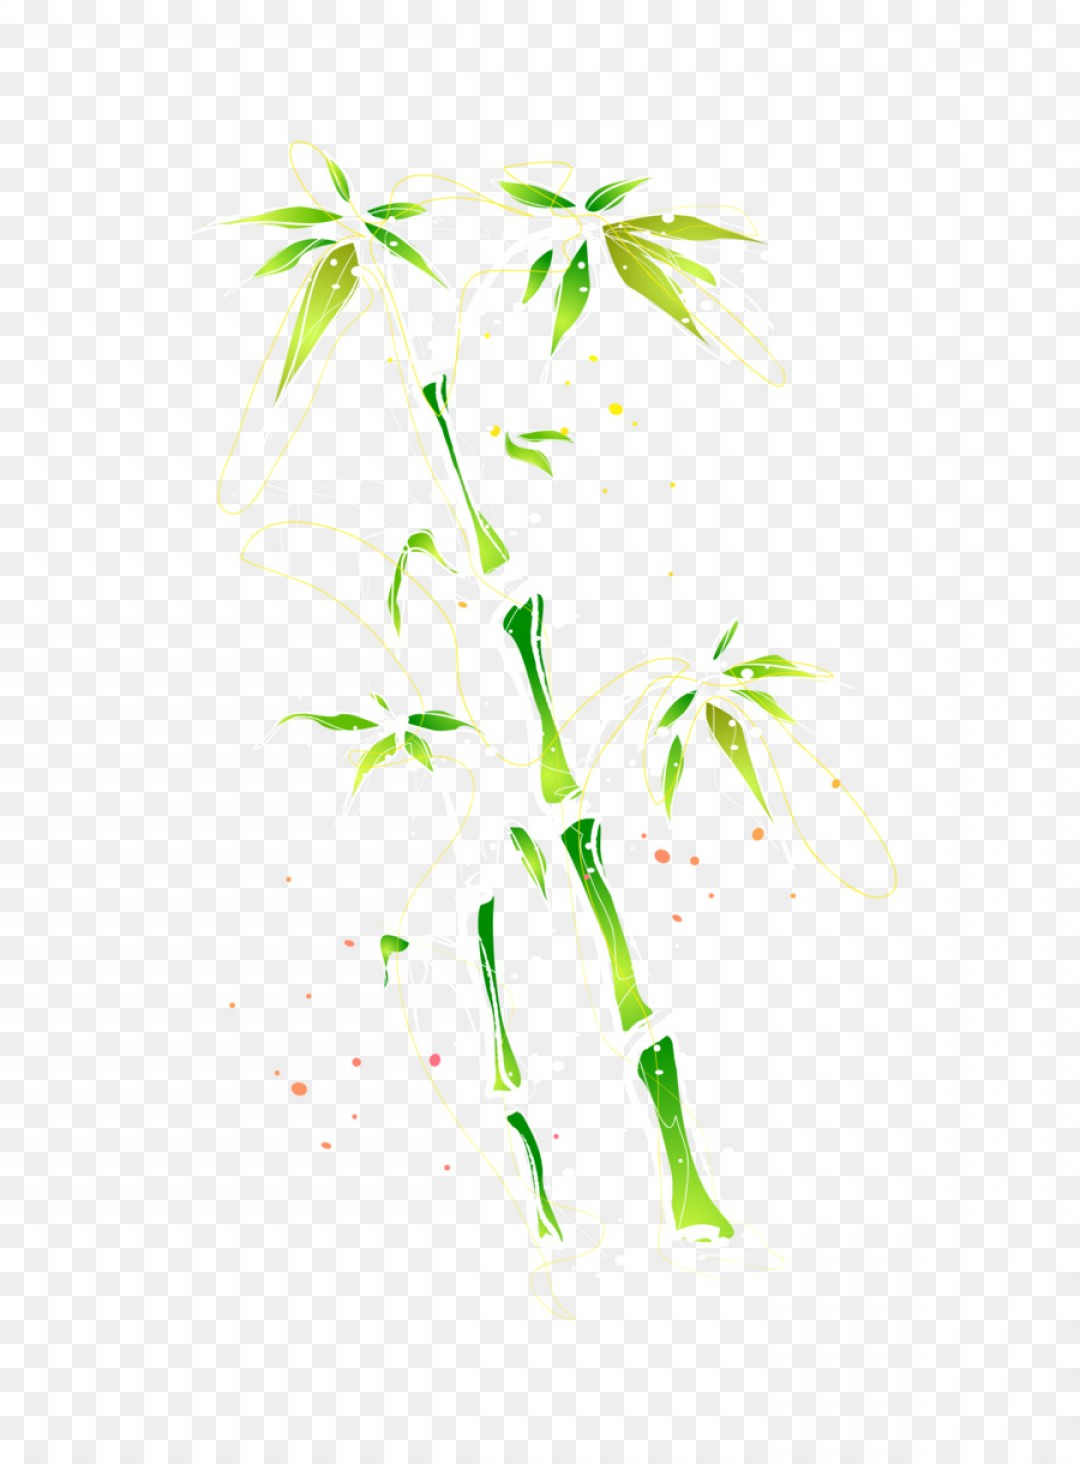 1080x1464 Png Bamboo Watercolor Painting Clip Art Vector Color W Geekchicpro